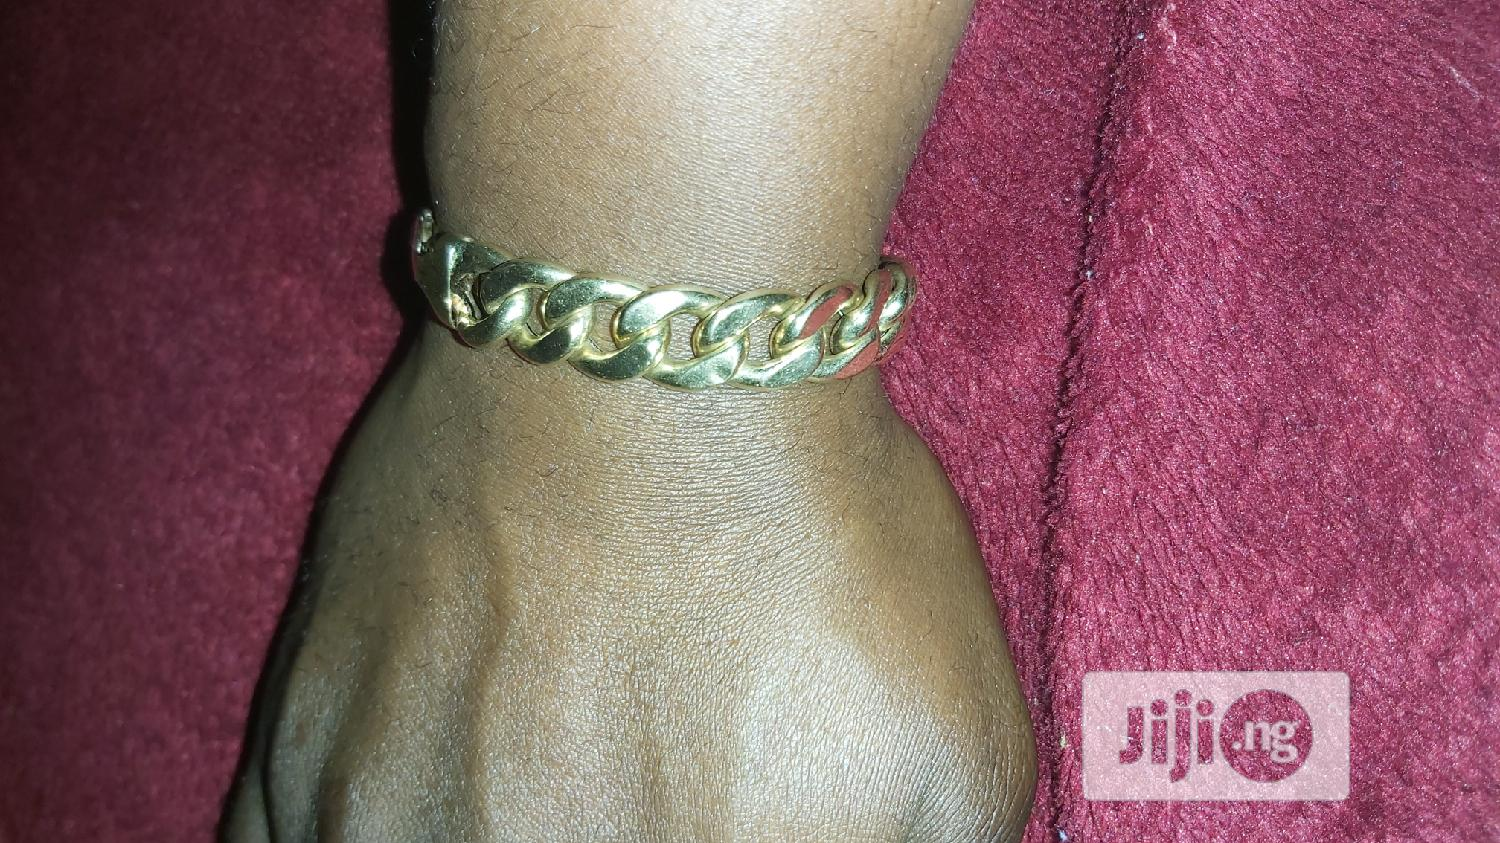 ITALY 750 Tested 18karat Solid Gold Cuban Design Bracelet | Jewelry for sale in Amuwo-Odofin, Lagos State, Nigeria